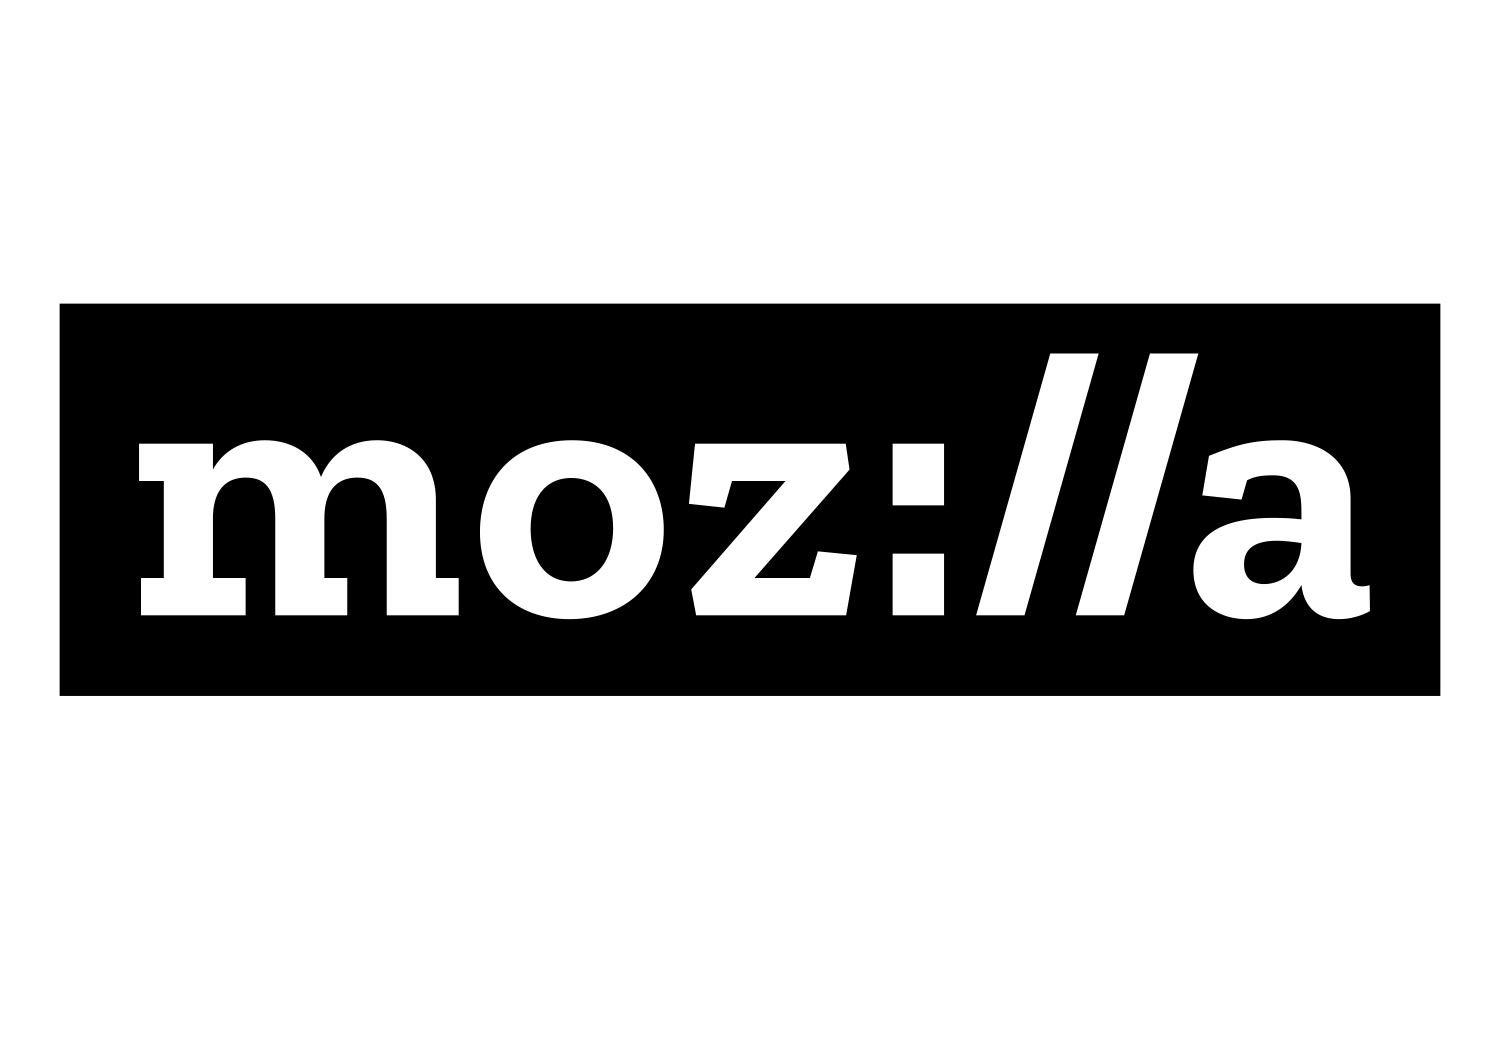 New branding for Mozilla where the letters i, l and l mimic the :// found in every URL